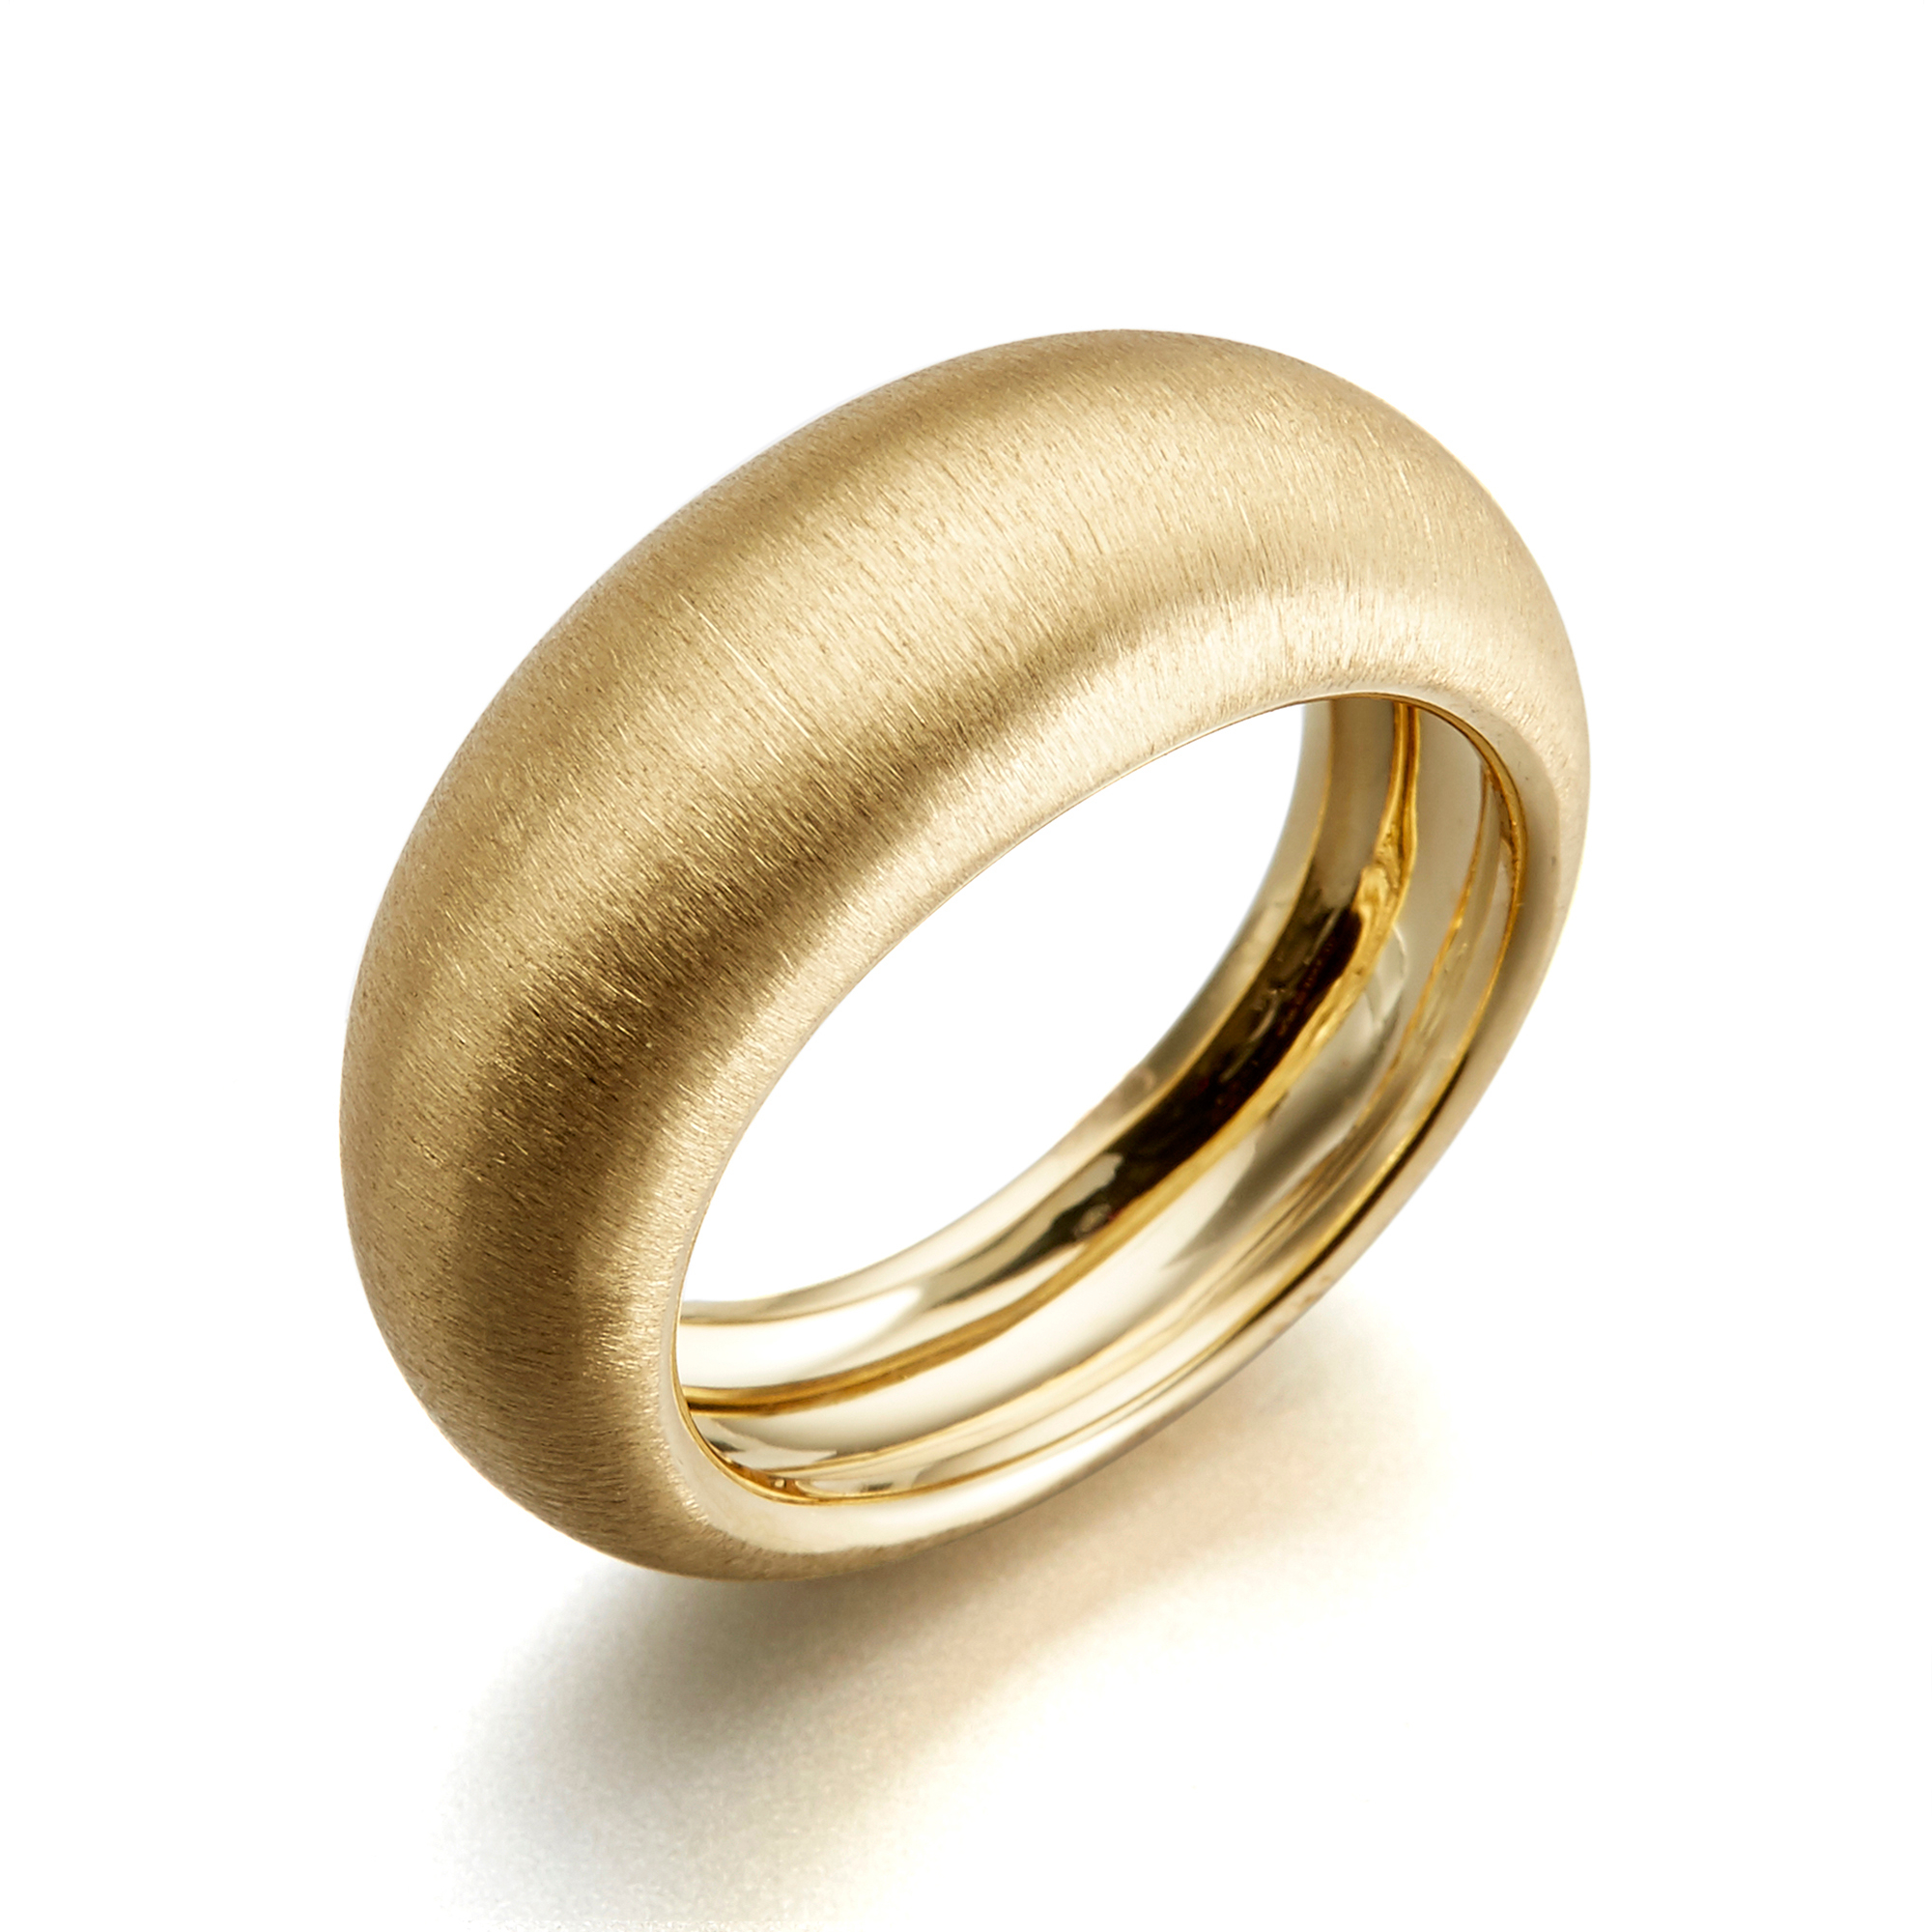 Aaron Henry Etched Tapered Dome Ring